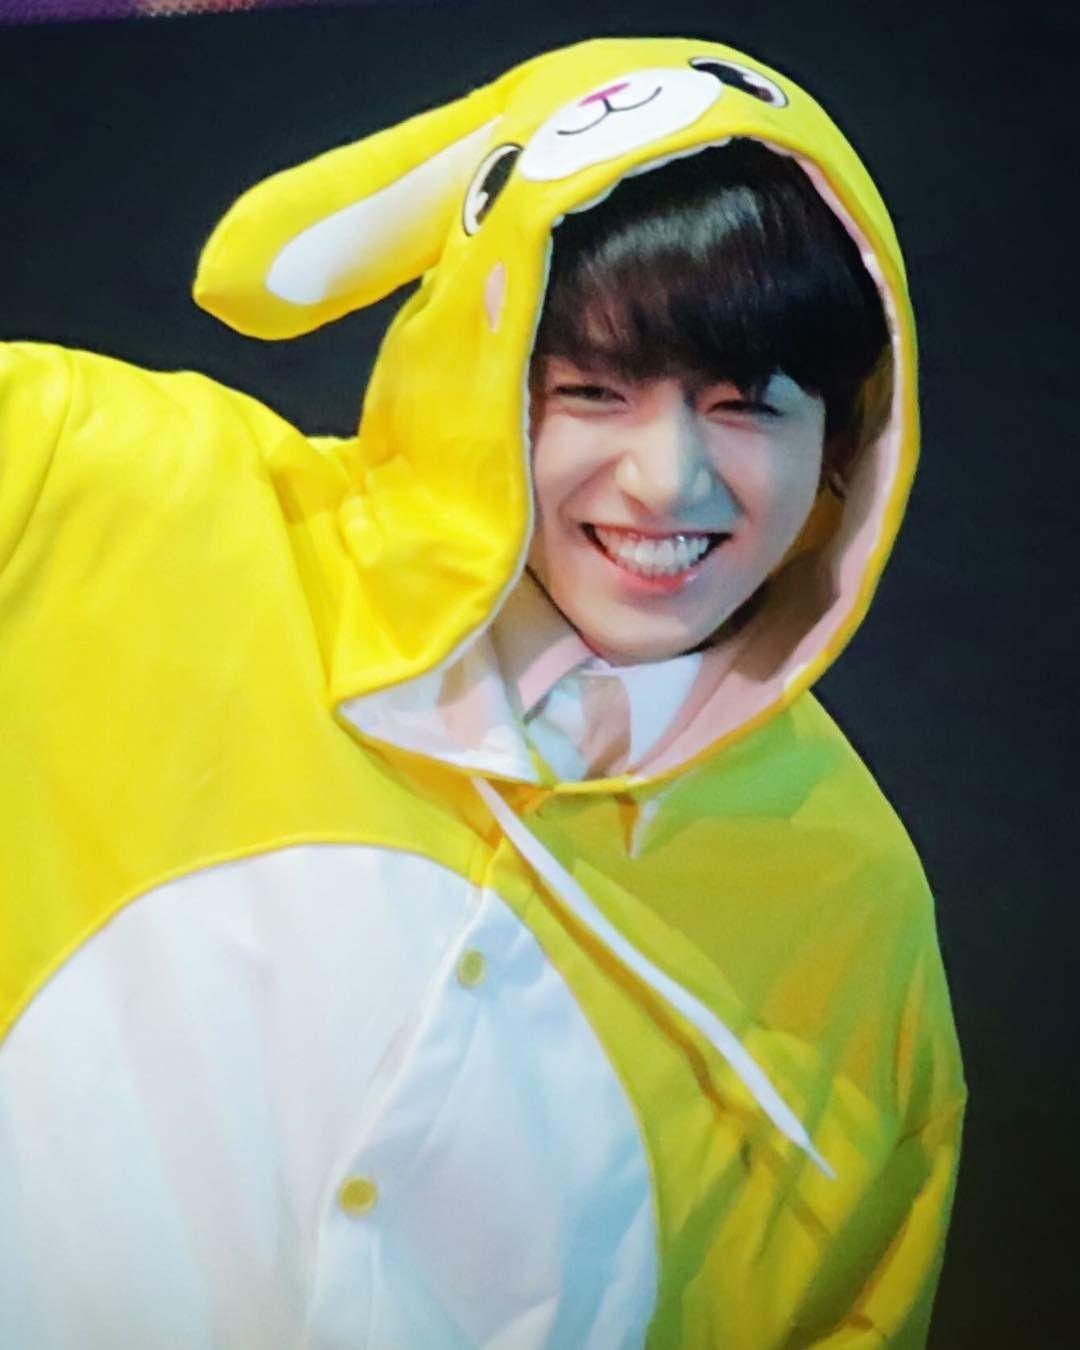 This Bunny Smile Makes Me Happy! #Jungkook #Bts In 2019